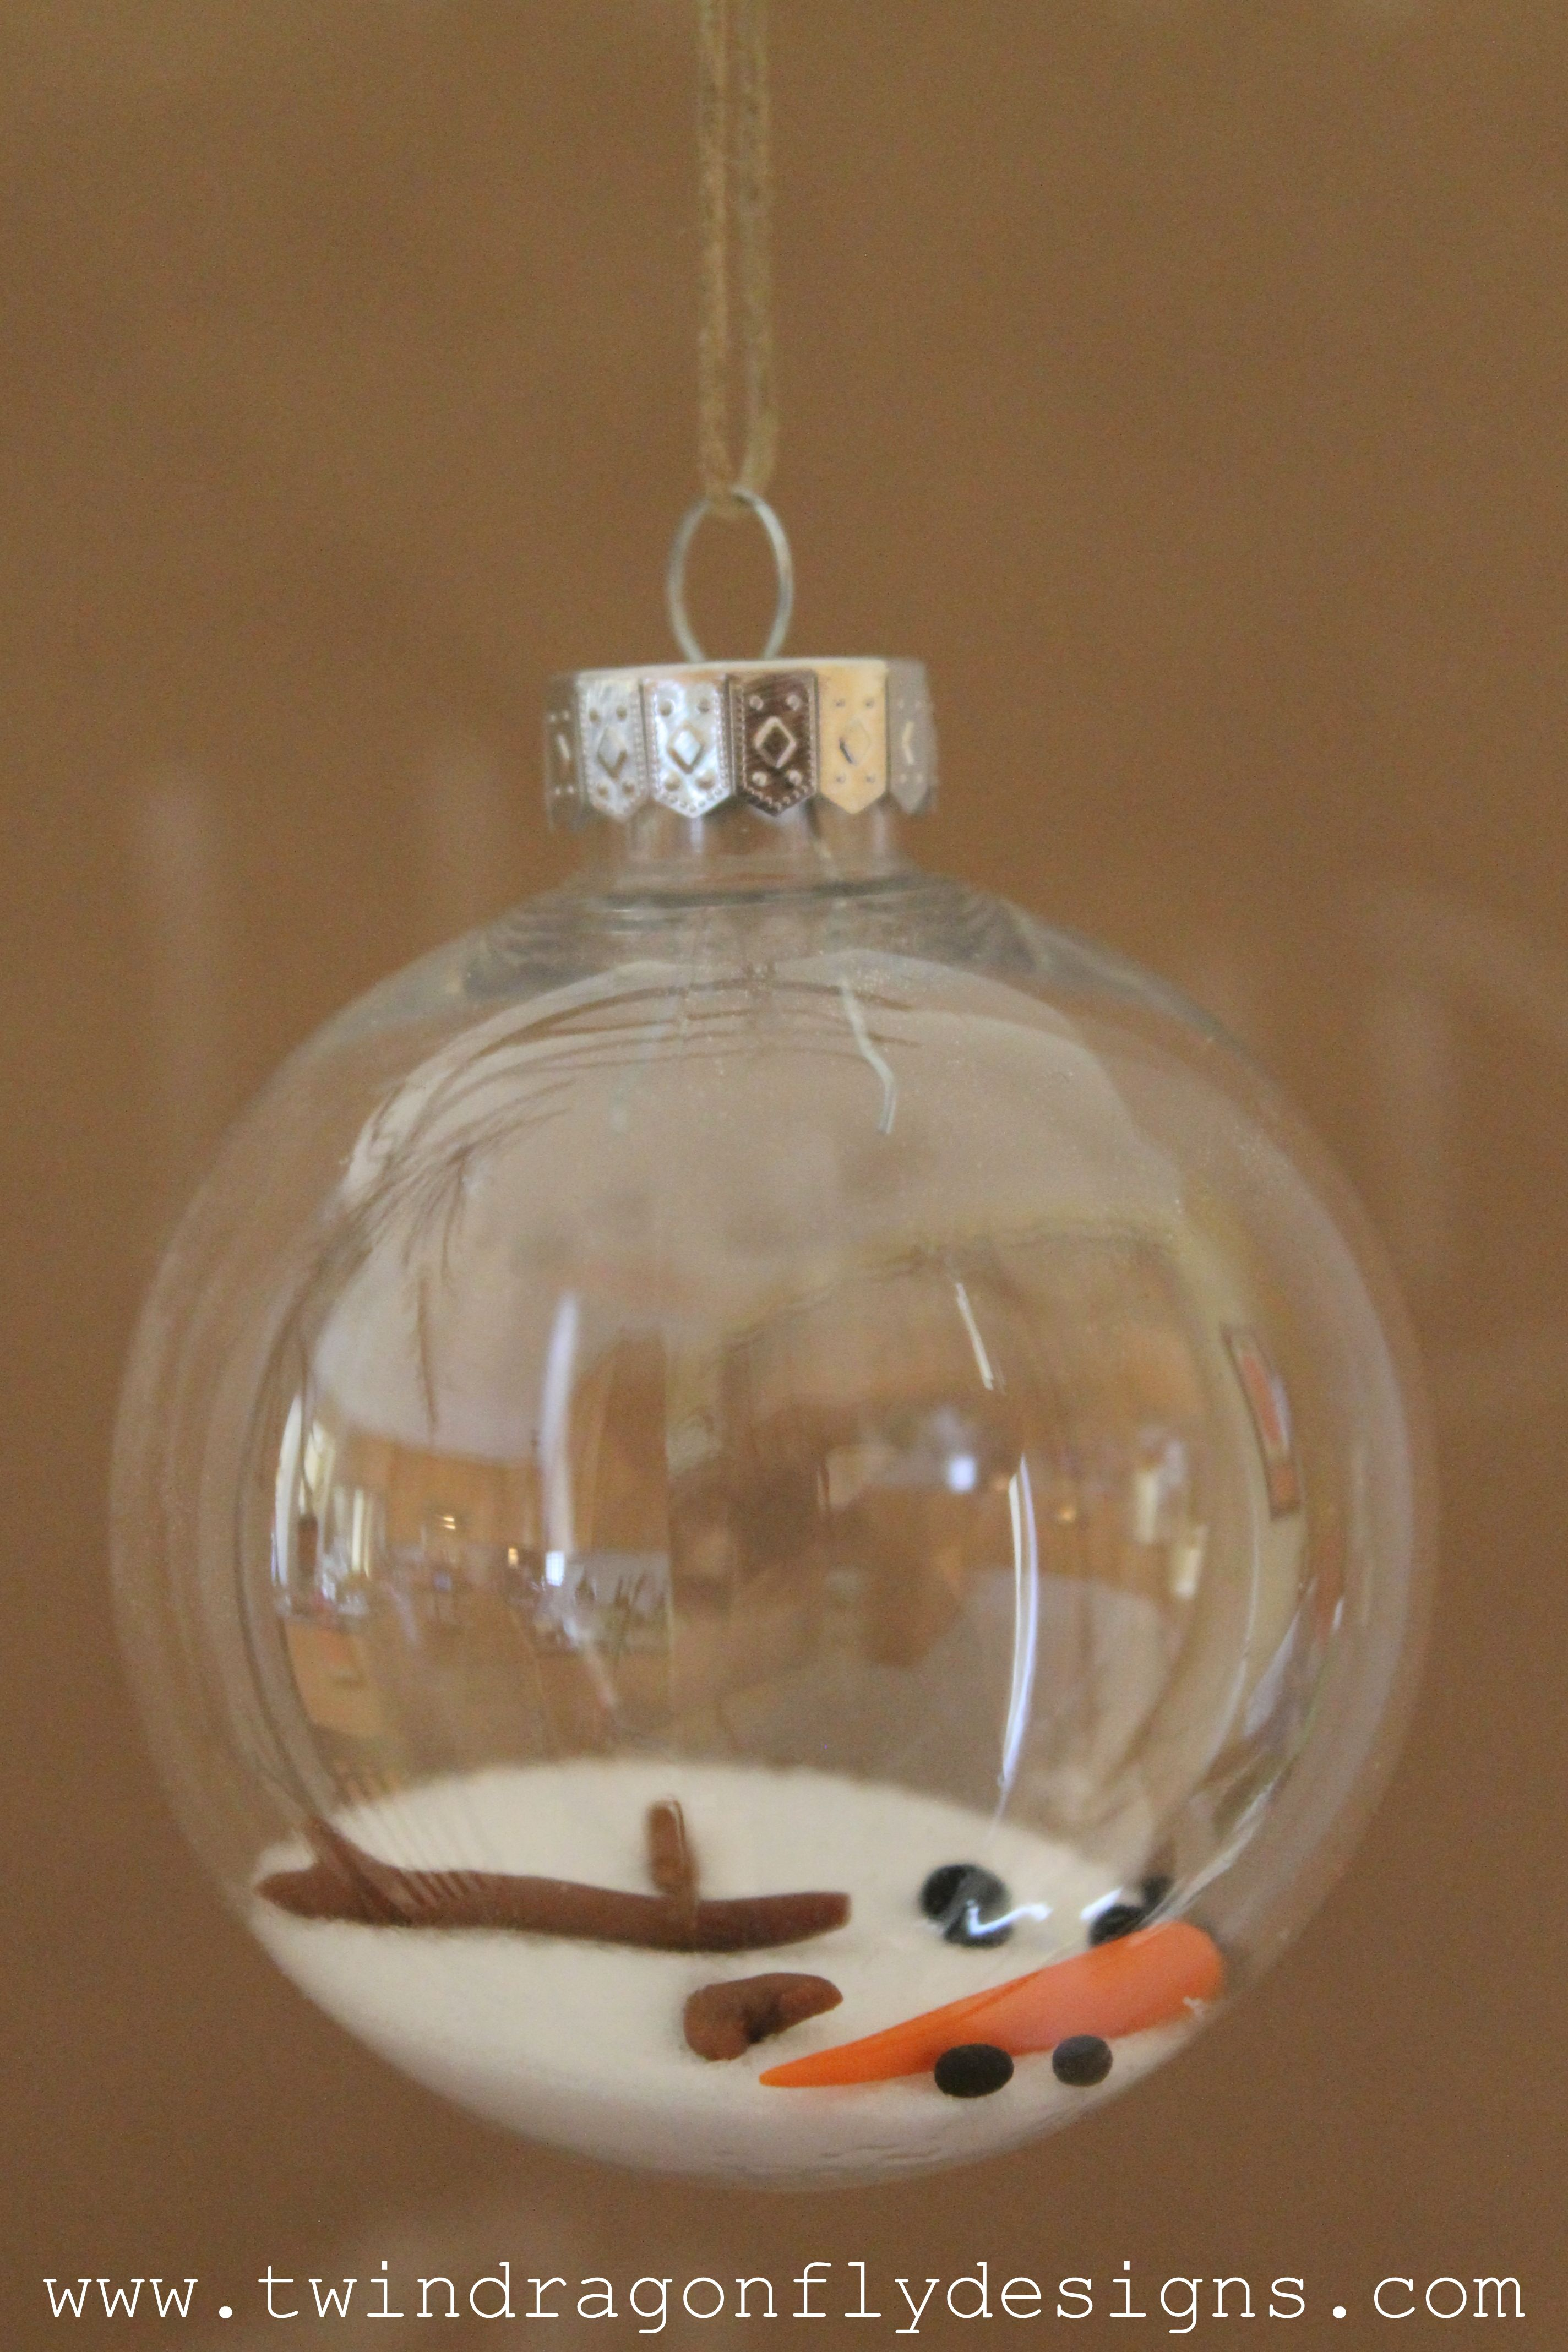 Diy Melted Snowman Ornament Inspiration Made Simple Melted Snowman Ornament Snowman Ornaments Clear Christmas Ornaments